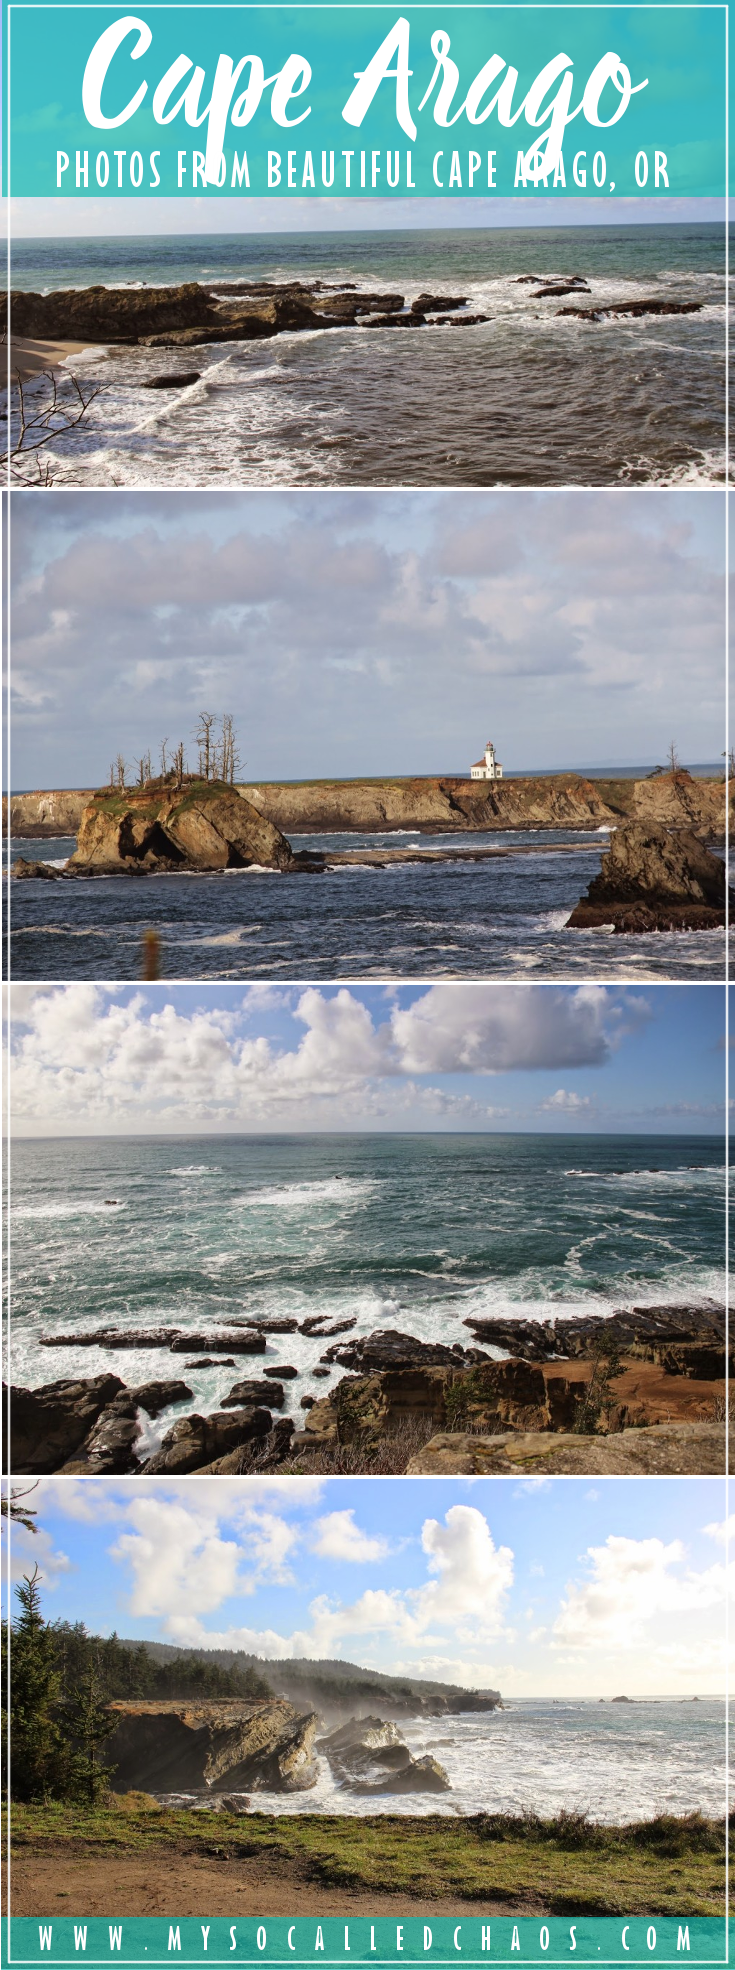 Photos from beautiful Cape Arago, OR